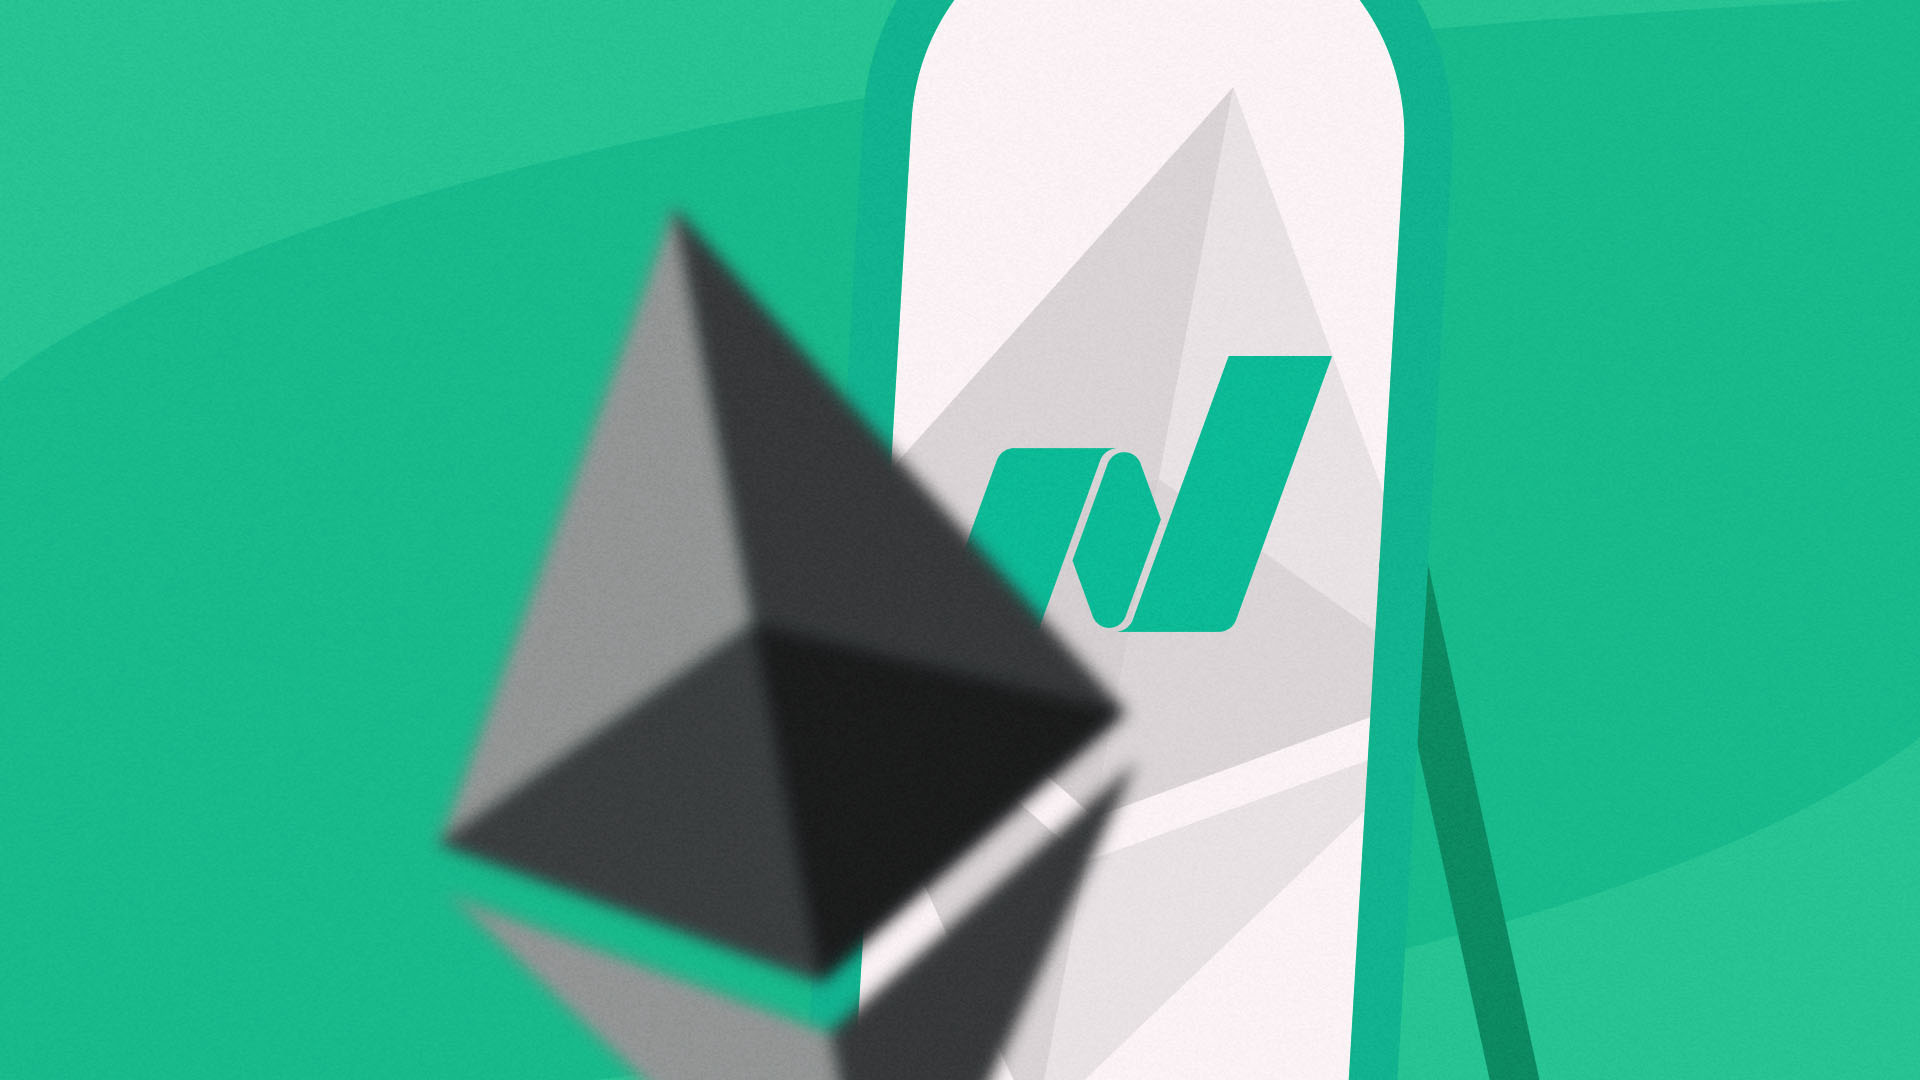 Ether Allen is a furniture stock that's captured the attention of crypto traders because of its similar symbol, ETH. And this image has both the NASDAQ symbol and Ethereum's